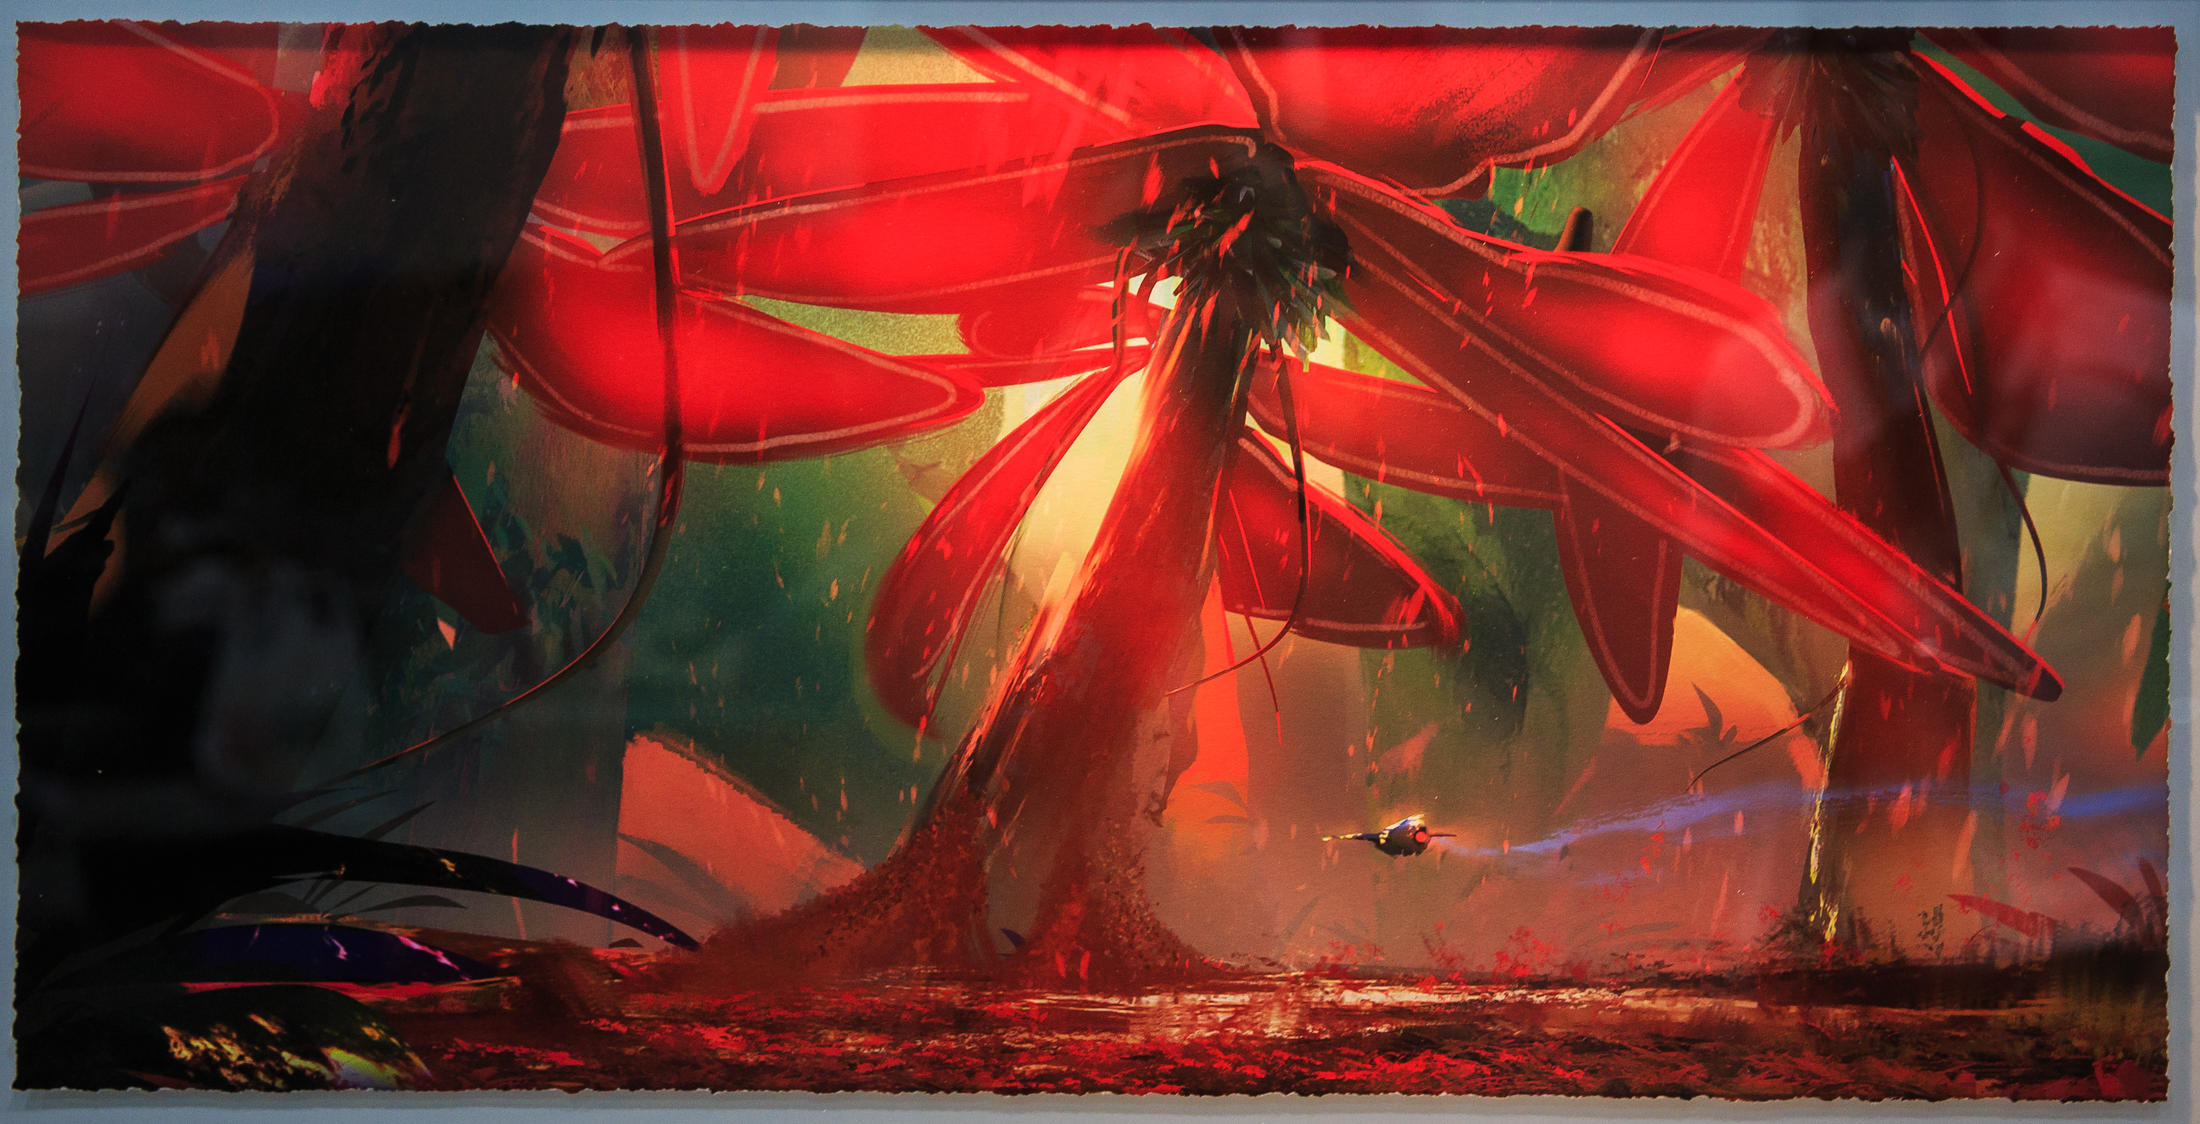 the-art-of-video-games-7778